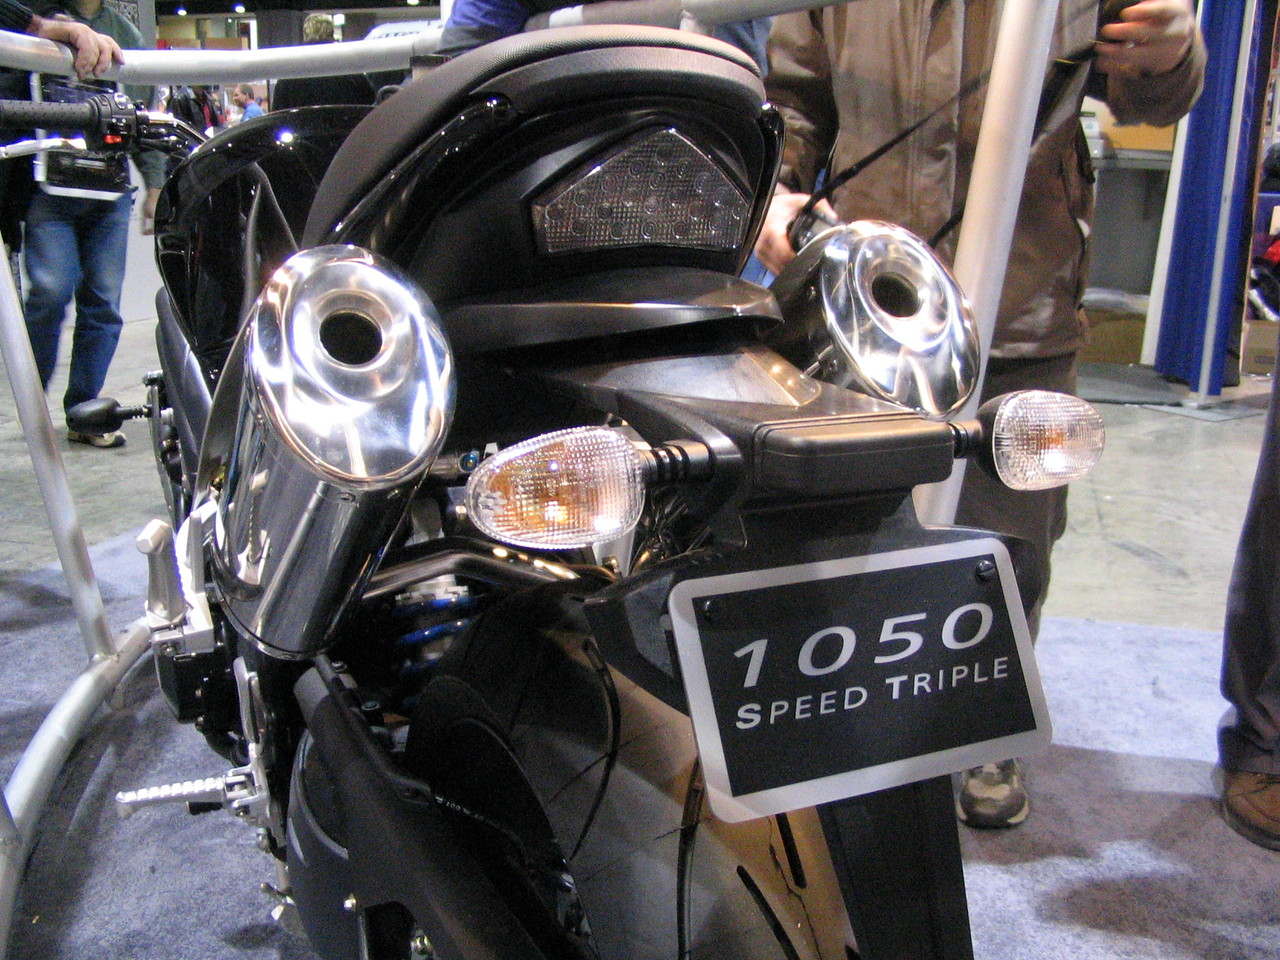 Upswept mufflers + short rear end + LED tail light = cool.  At least in 2005.